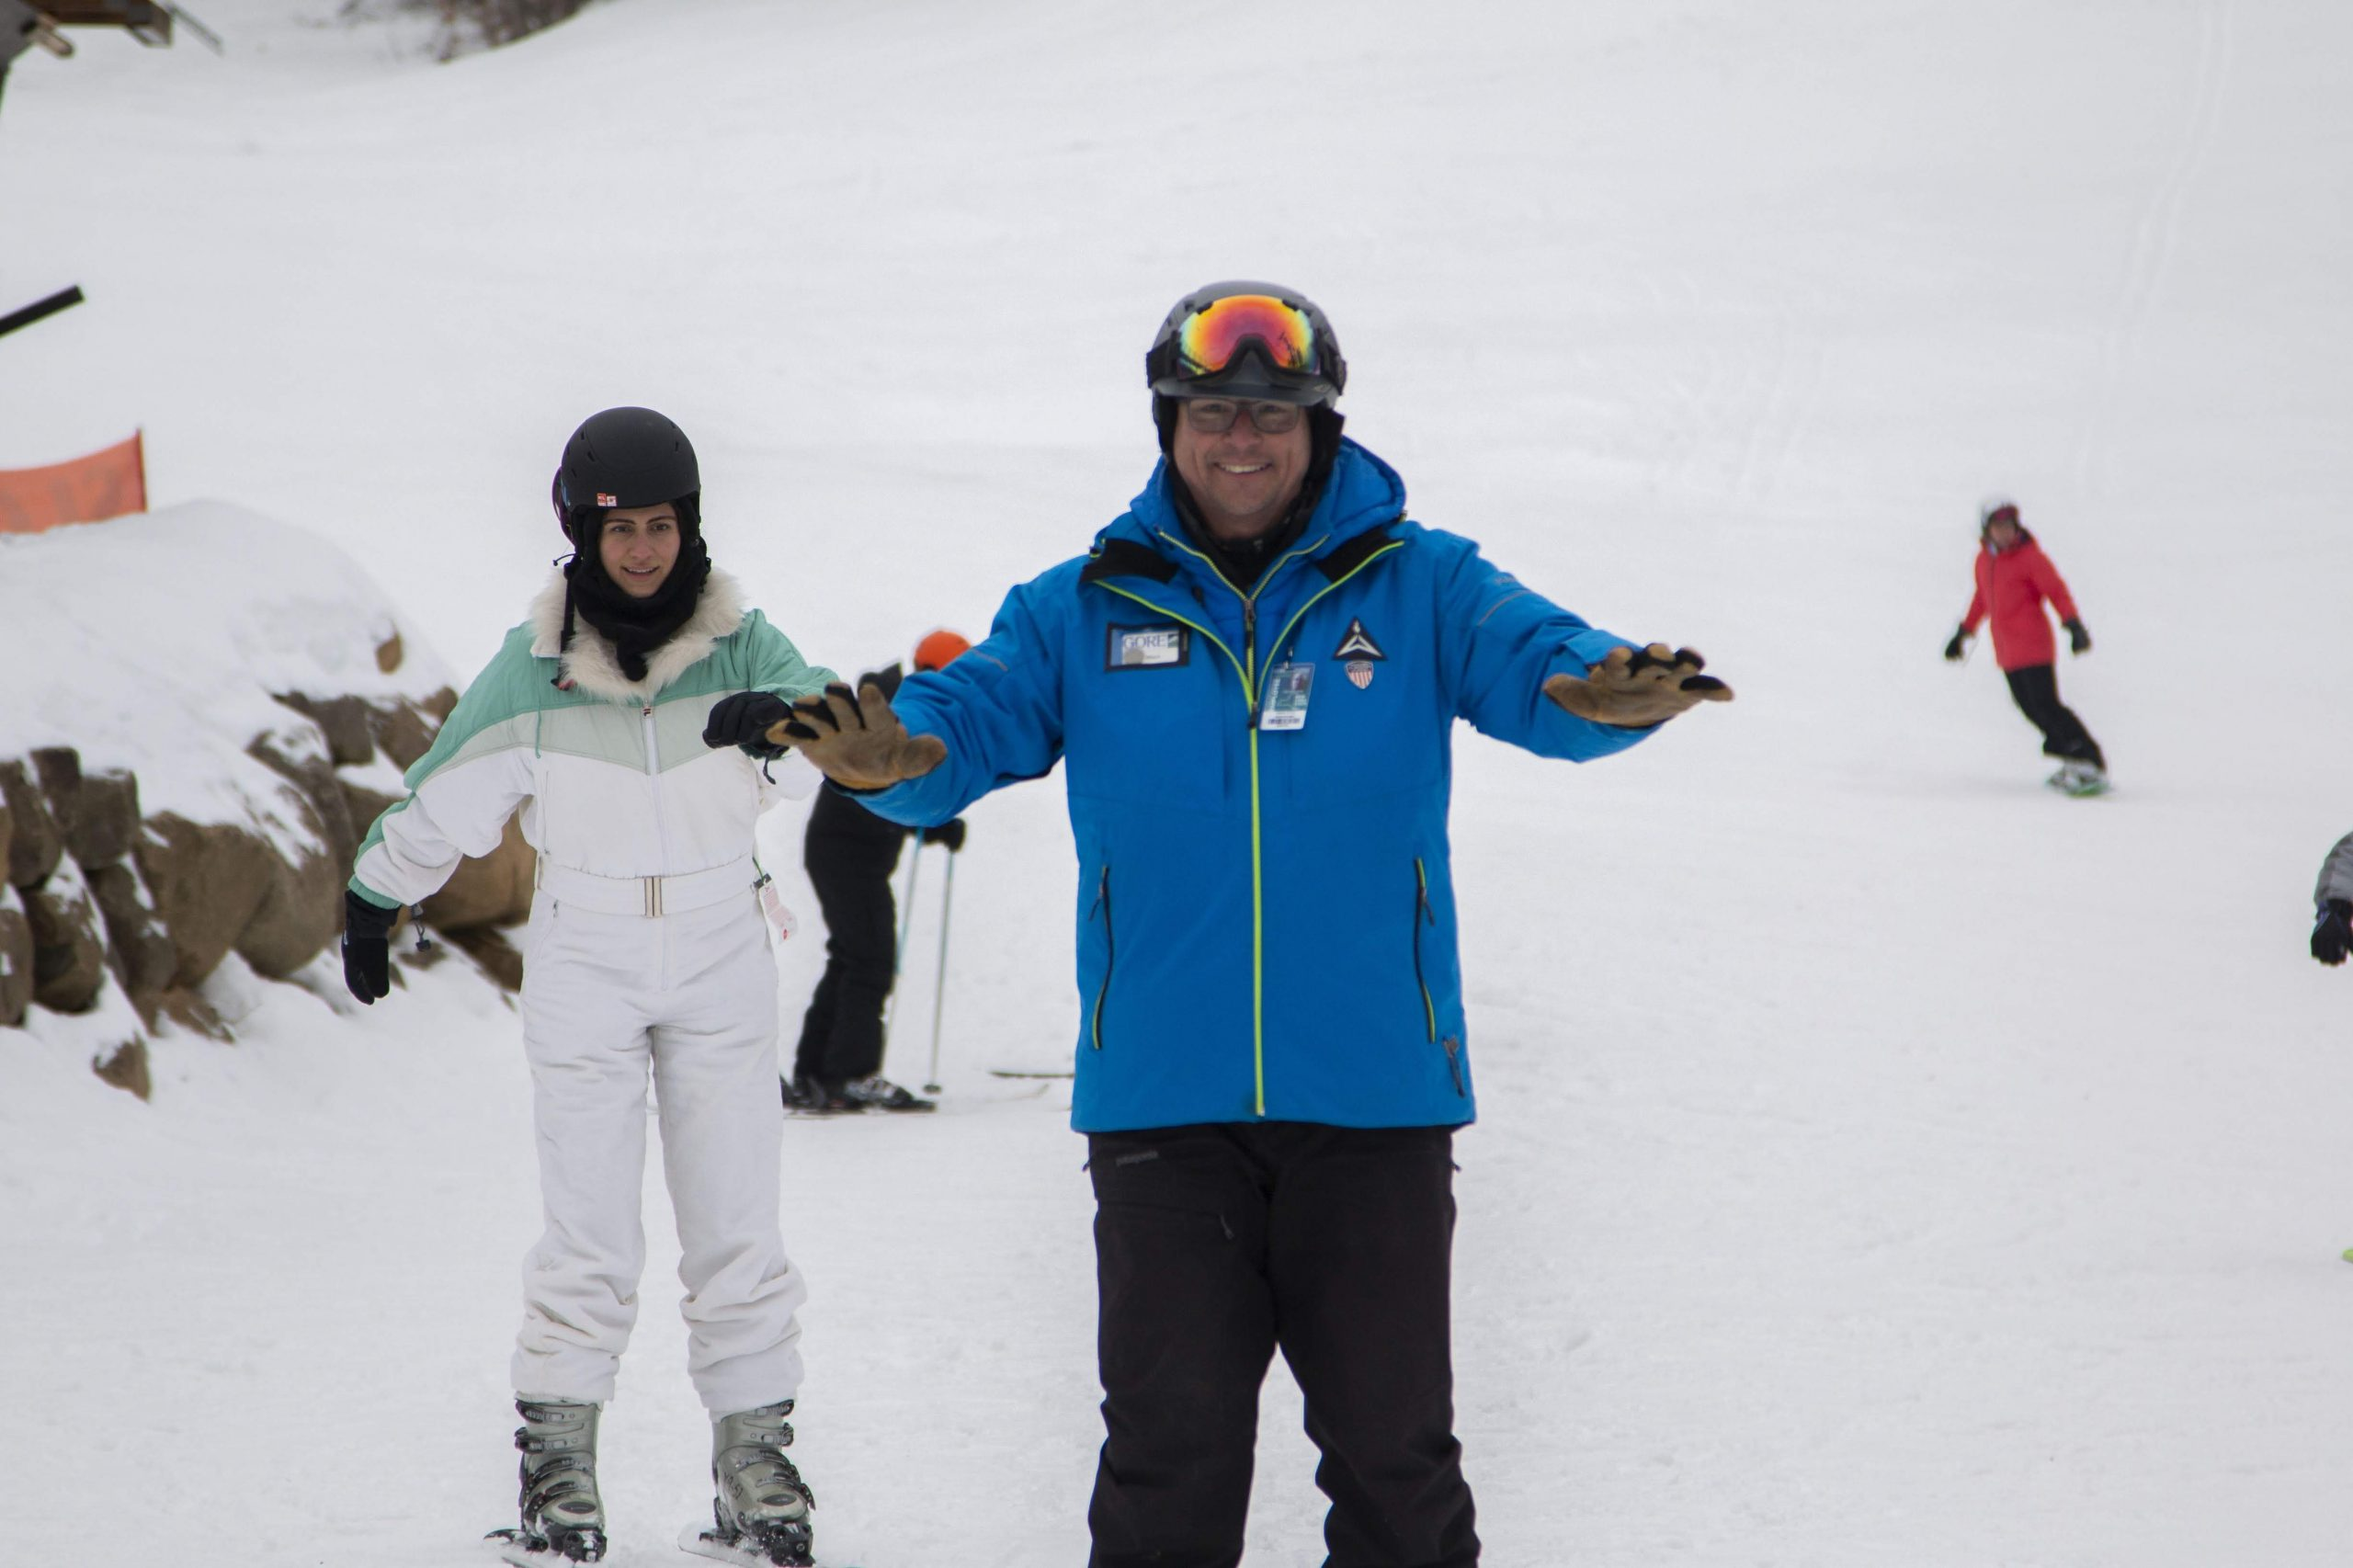 Adult Woman Learning how to ski for the first time with an Instructor